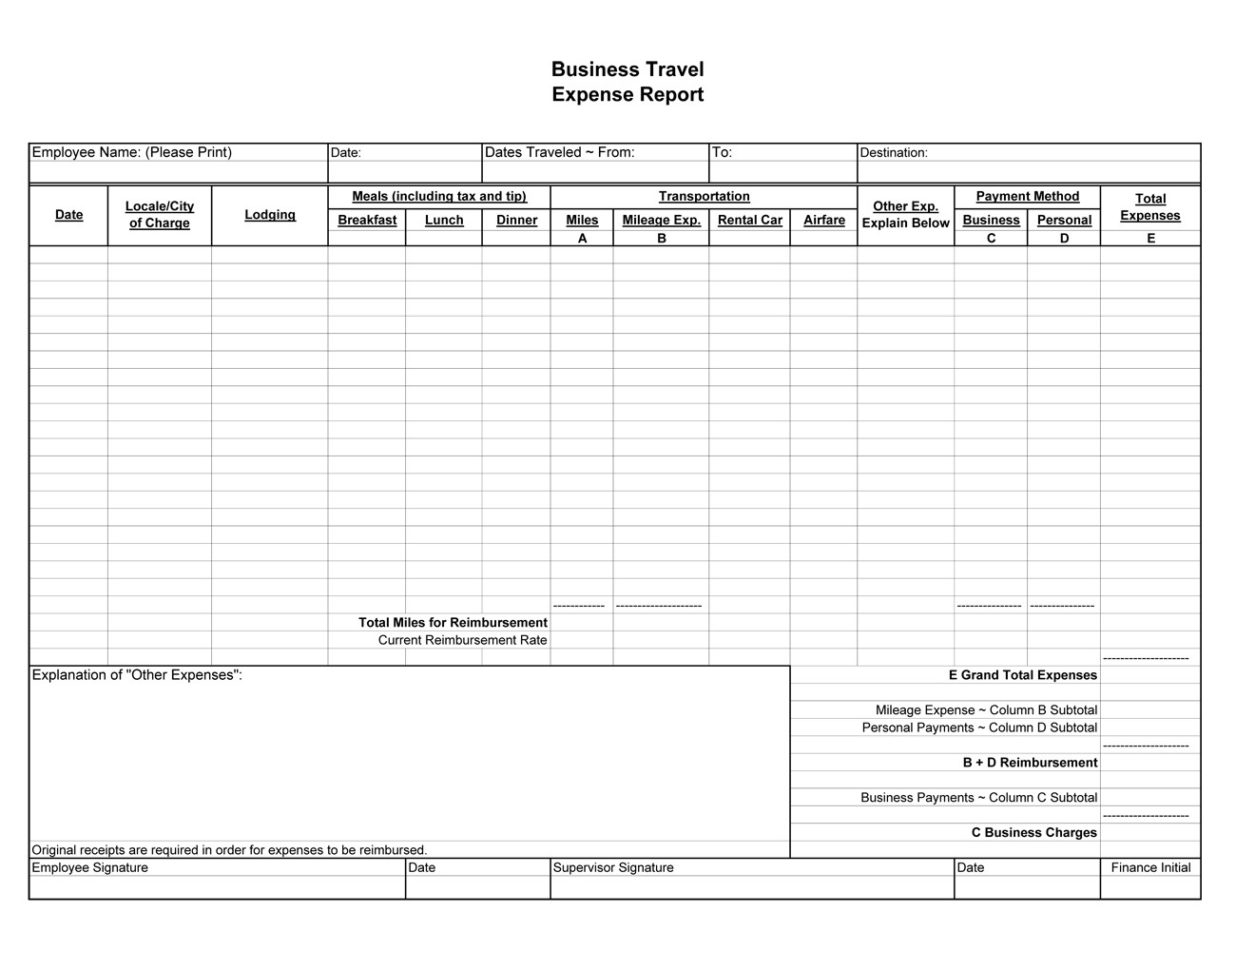 Business Trip Expense Report Template Travel Compatible Add Reports In Business Travel Expense Report Template